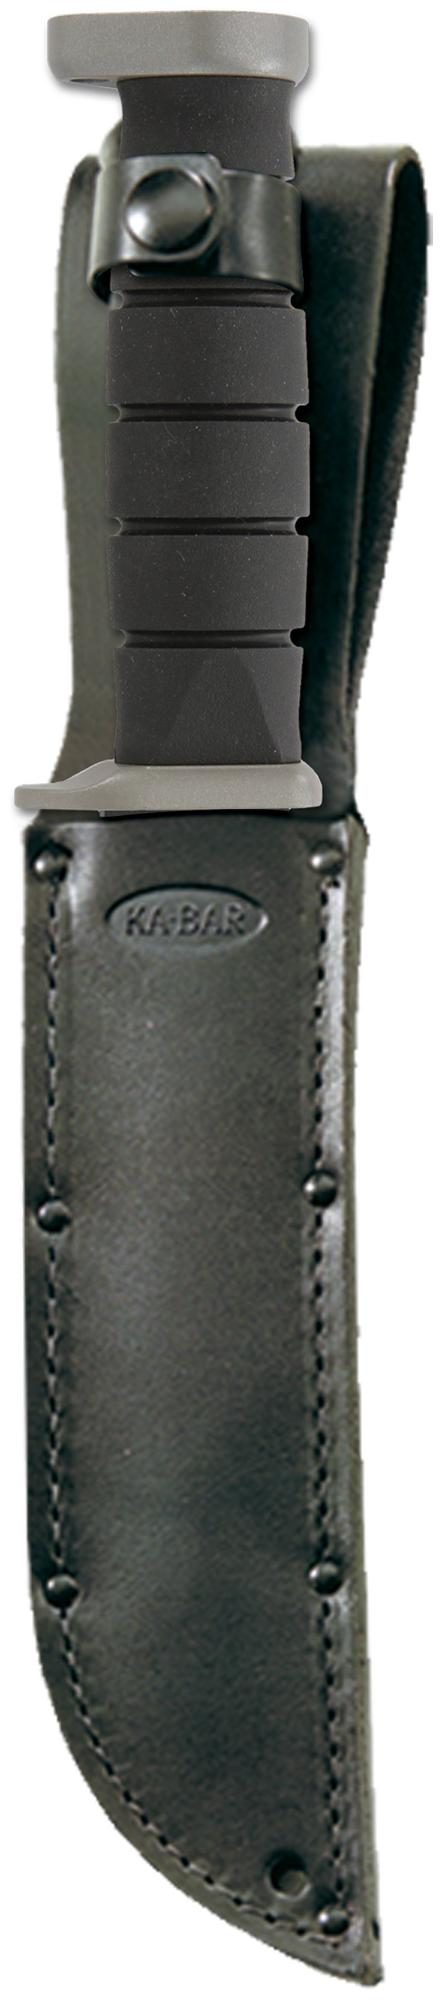 KA-BAR D2 Extreme Fighting/Utility Knife - Forethought Survival Essentials